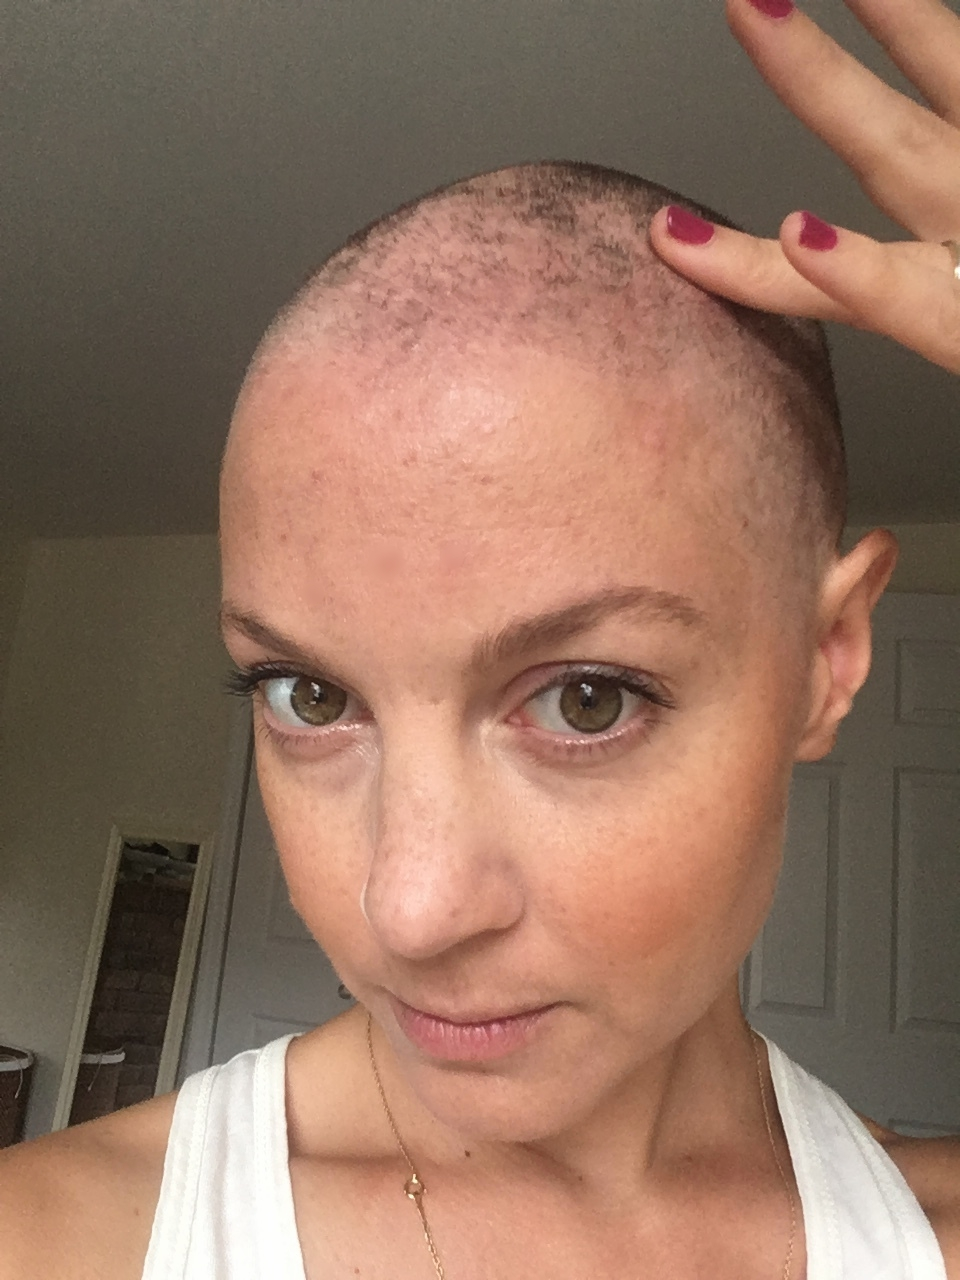 One week after radiation: hair loss continues.